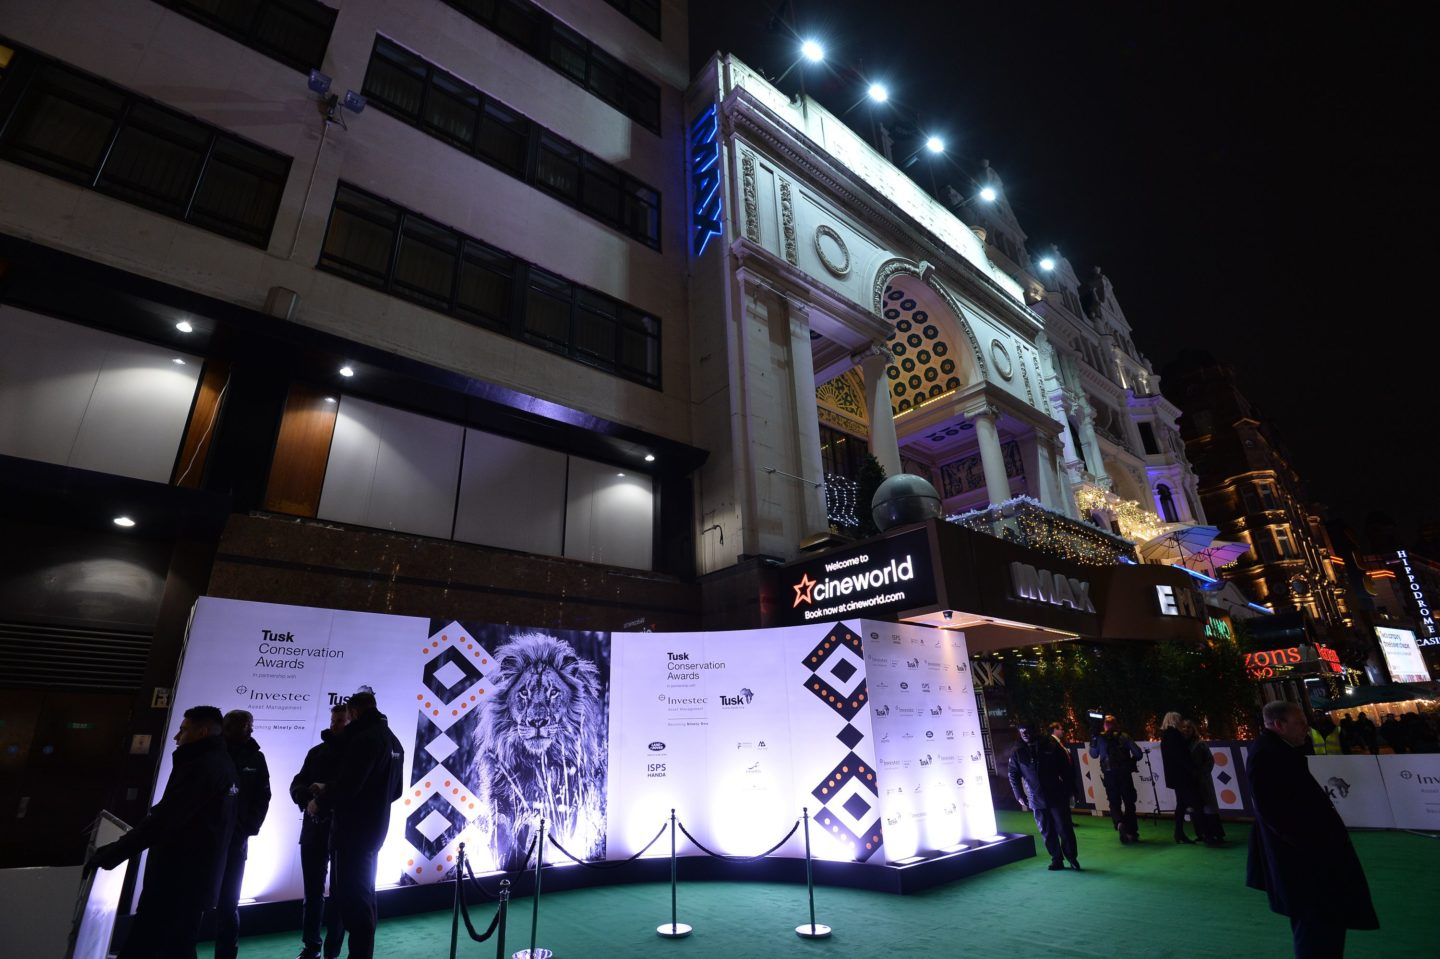 The ceremony was held at the Empire Cinema, Leicester Square